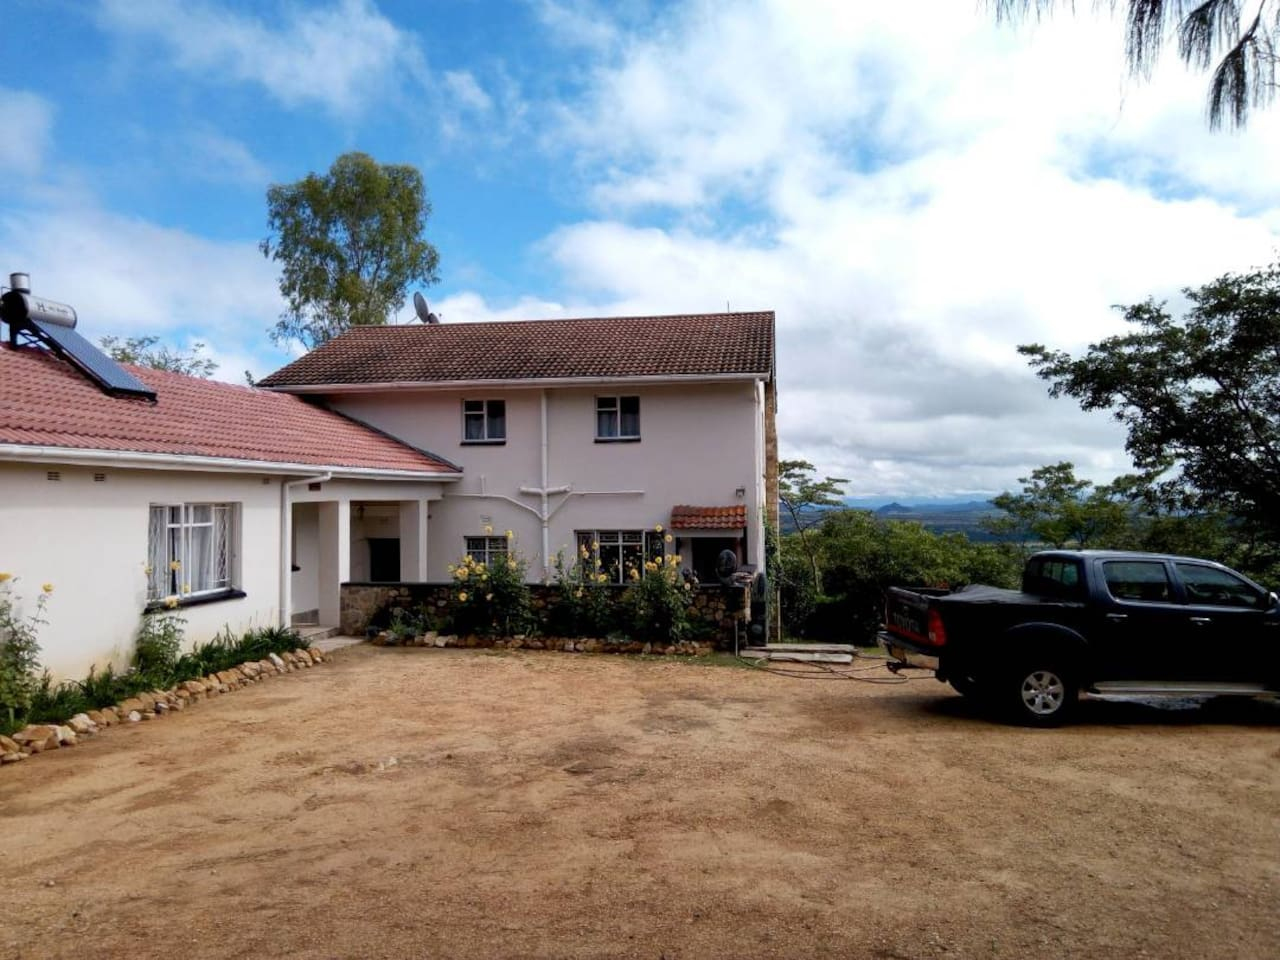 The Cottage on the hilltop facing Nyanga Holiday Resort